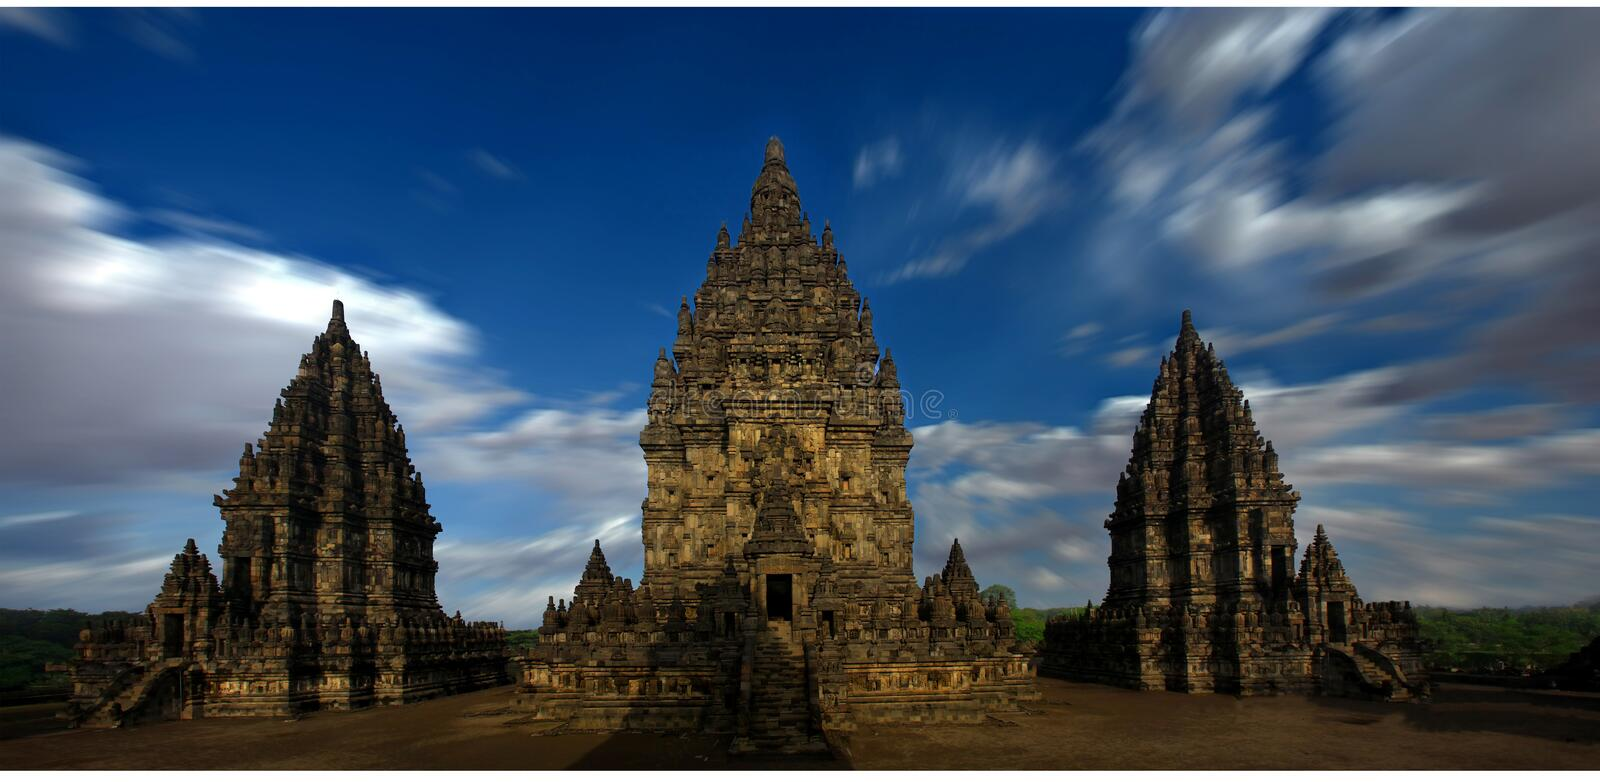 Prambanan Temple vie at Yogyakarta Indonesia. Clear bright at Prambanan is a hindhu temple at yogyakarta Indonesia royalty free stock image